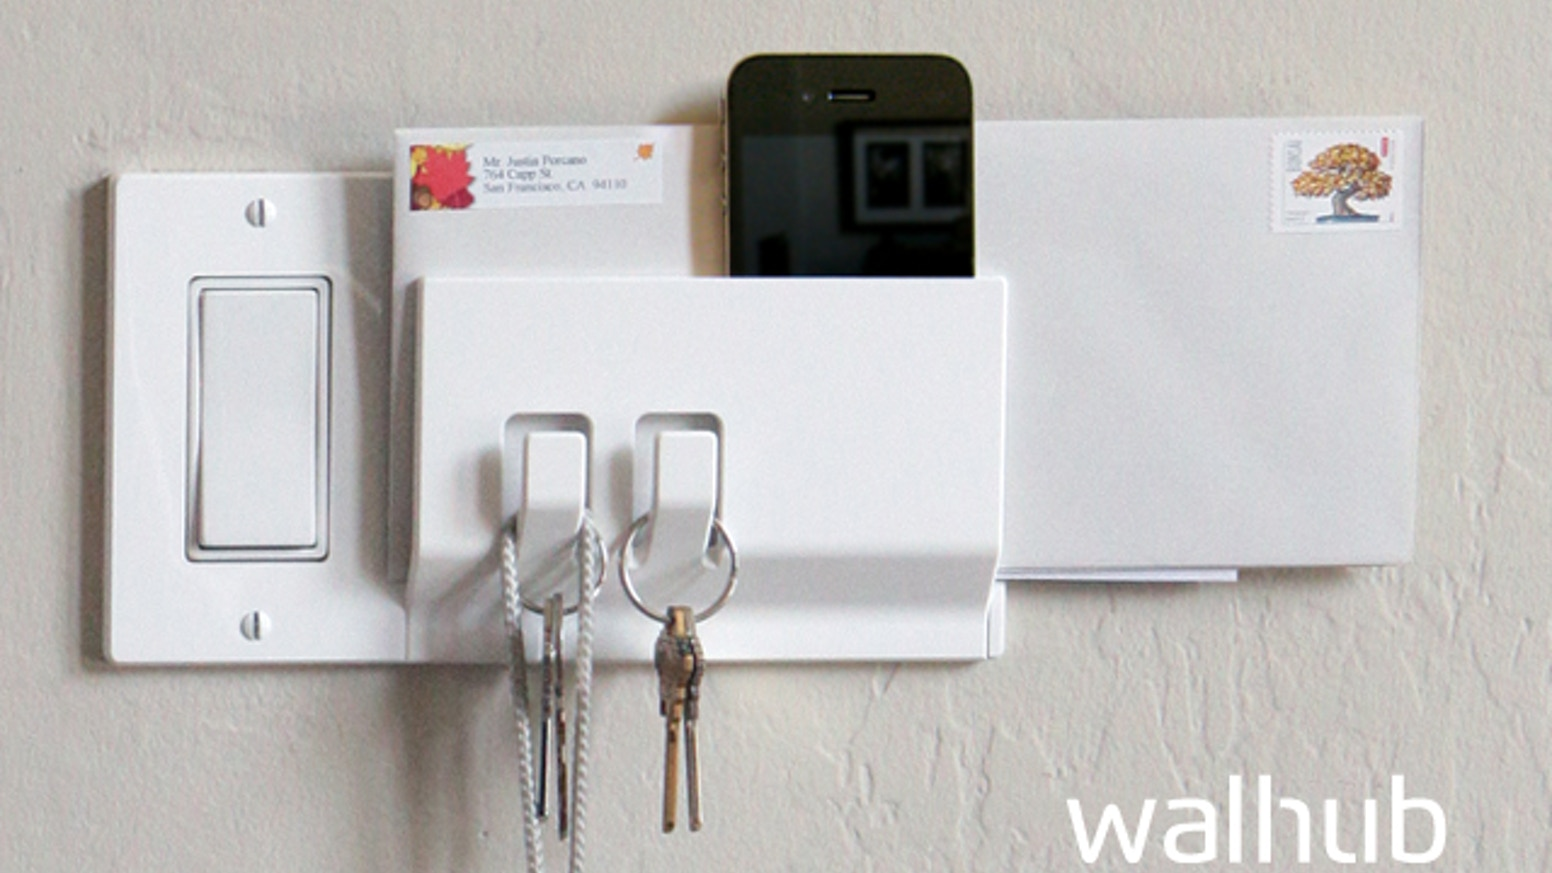 Walhub: Functional switch plates by Justin Porcano — Kickstarter